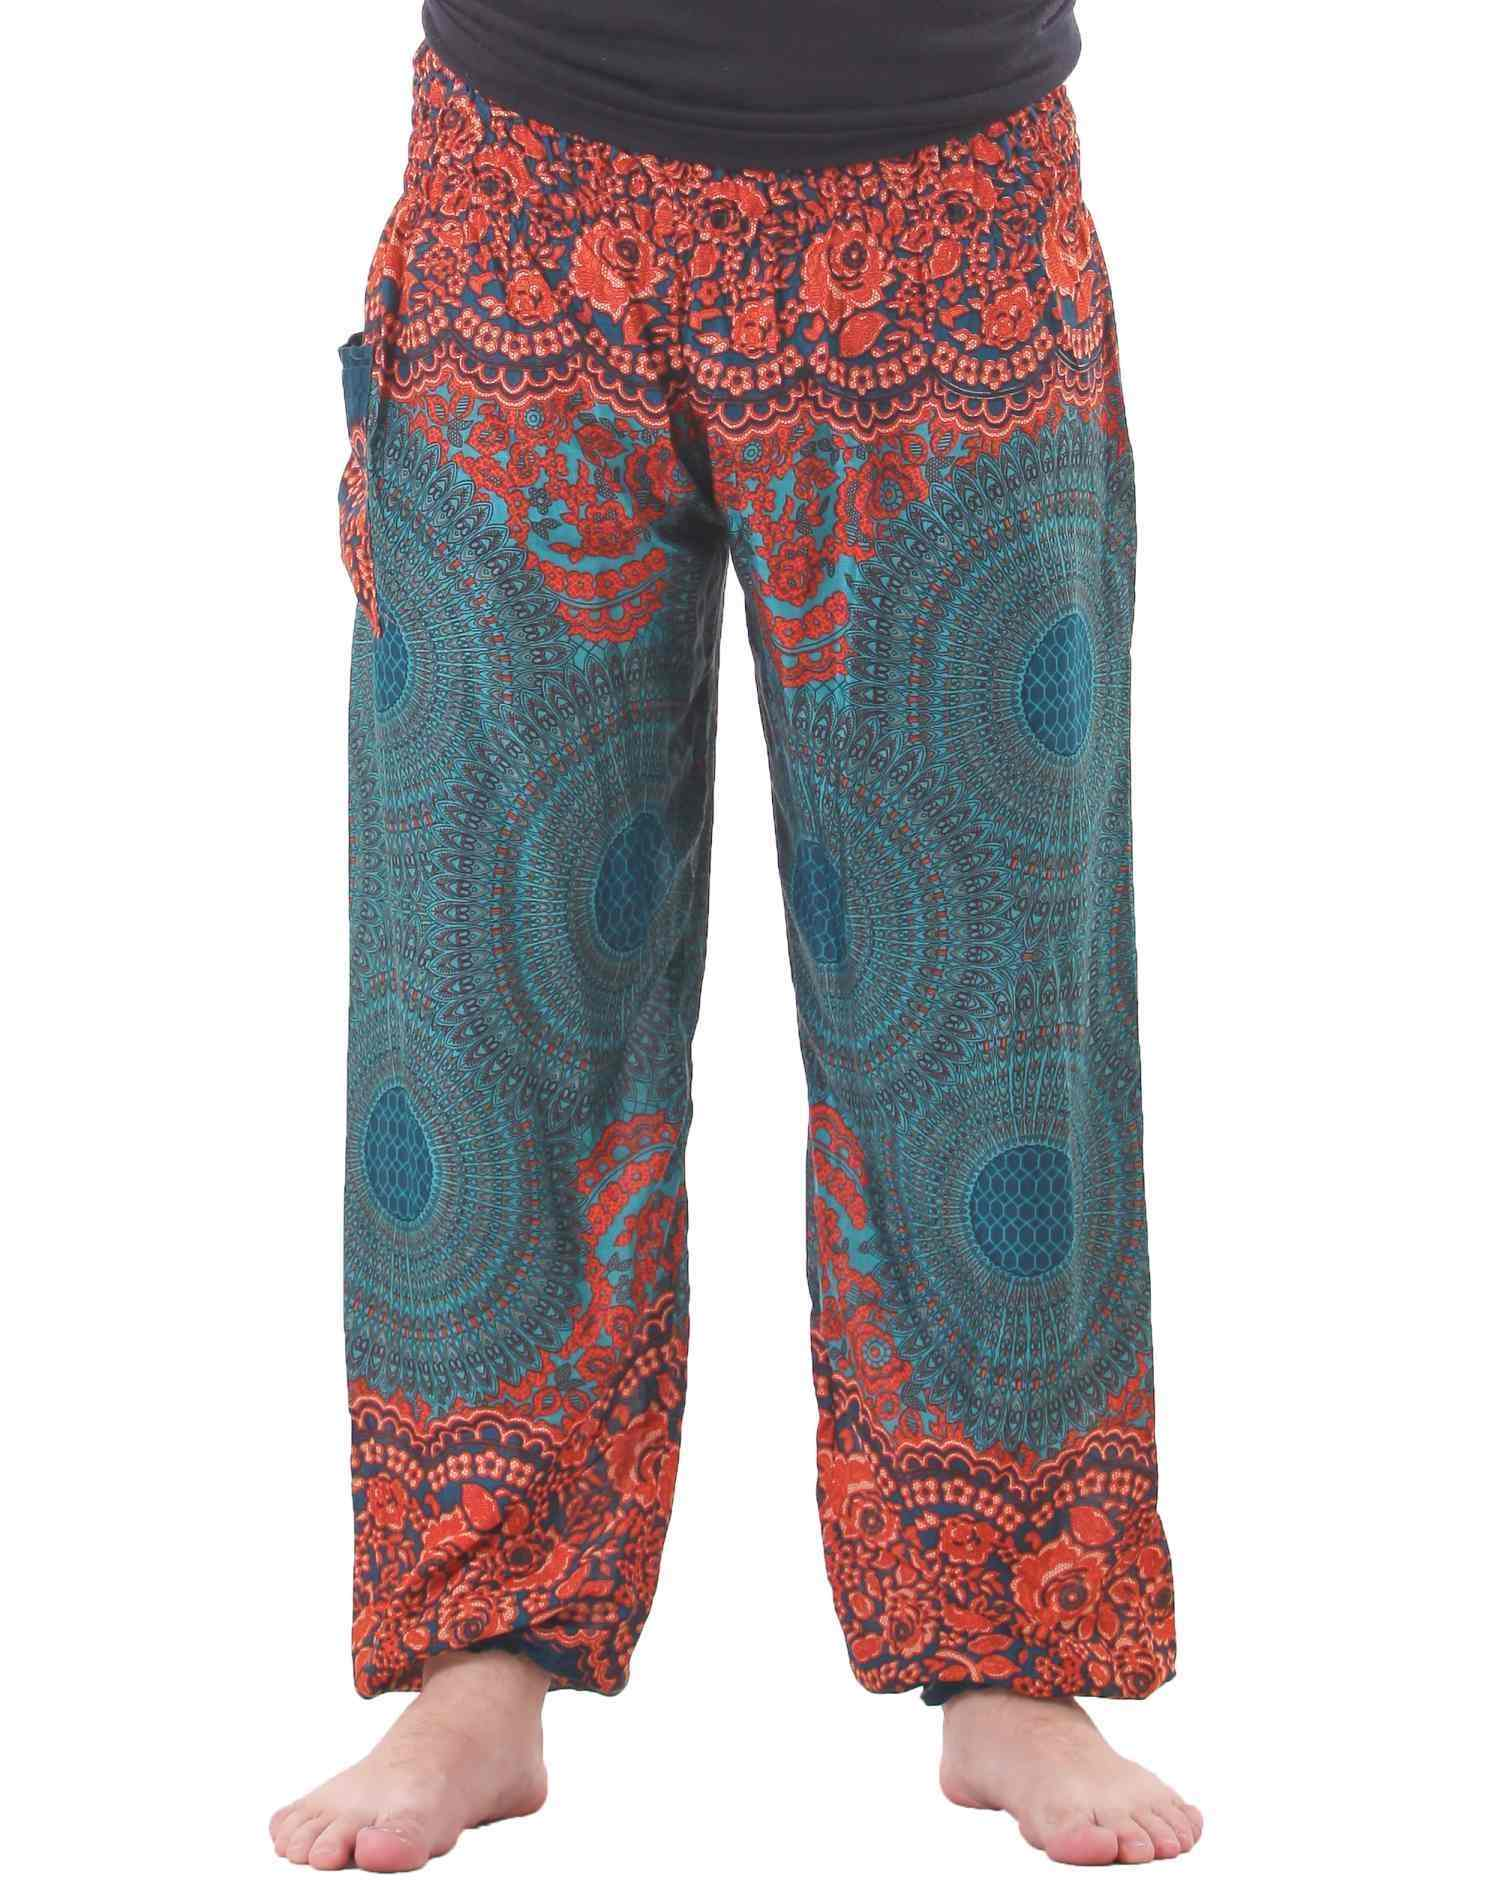 Mandala Harem Hippie Pants in Turquoise for Men